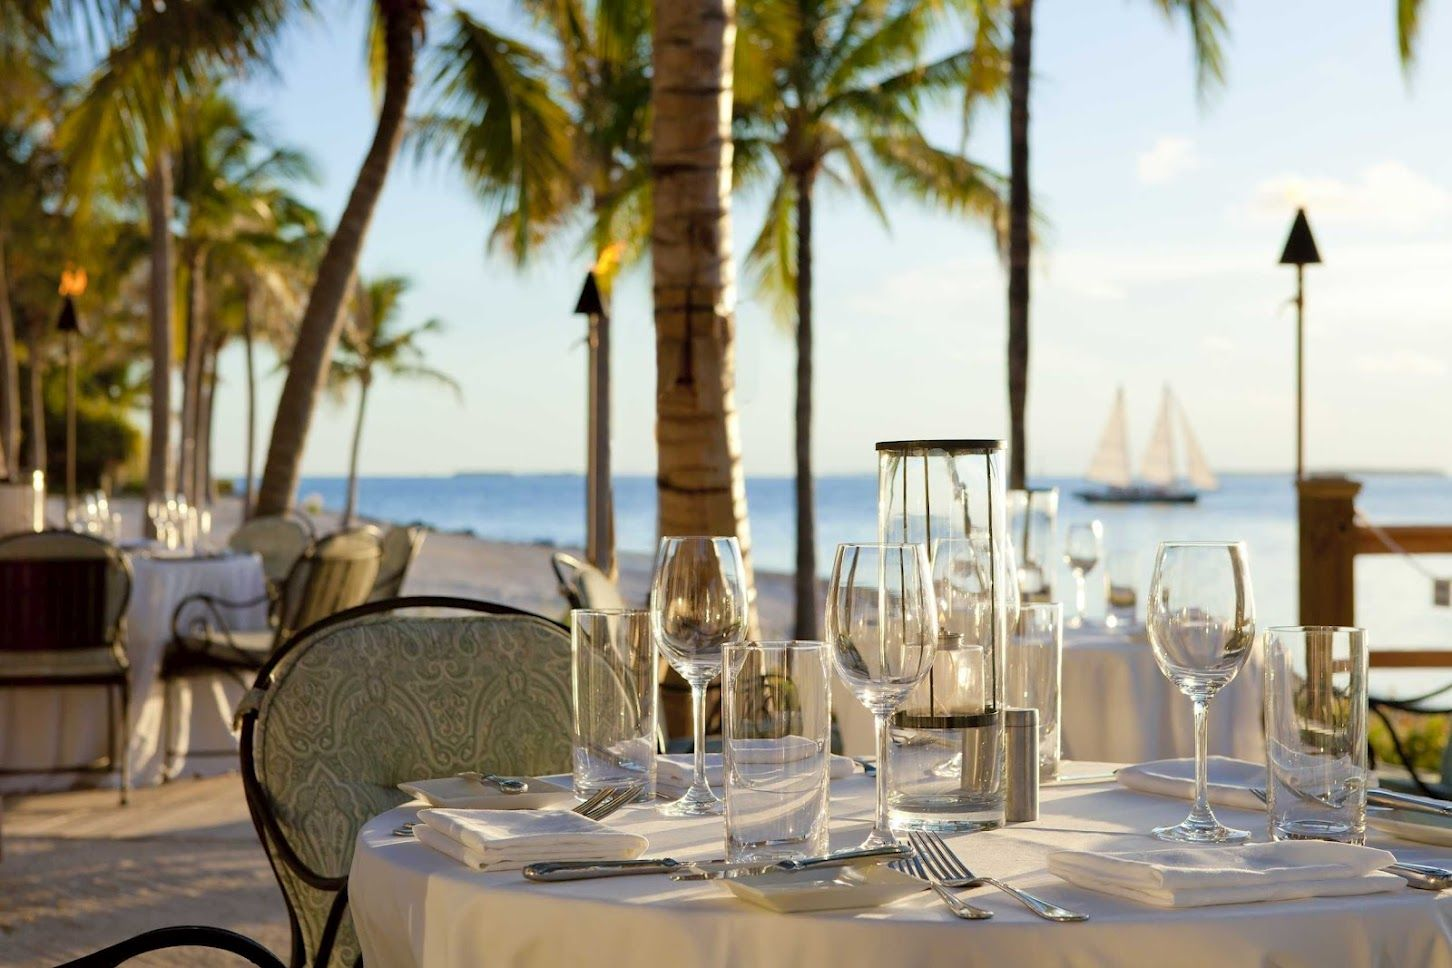 Laudes Restaurant In Key West Fl Best Incredible Location Right On The Beach